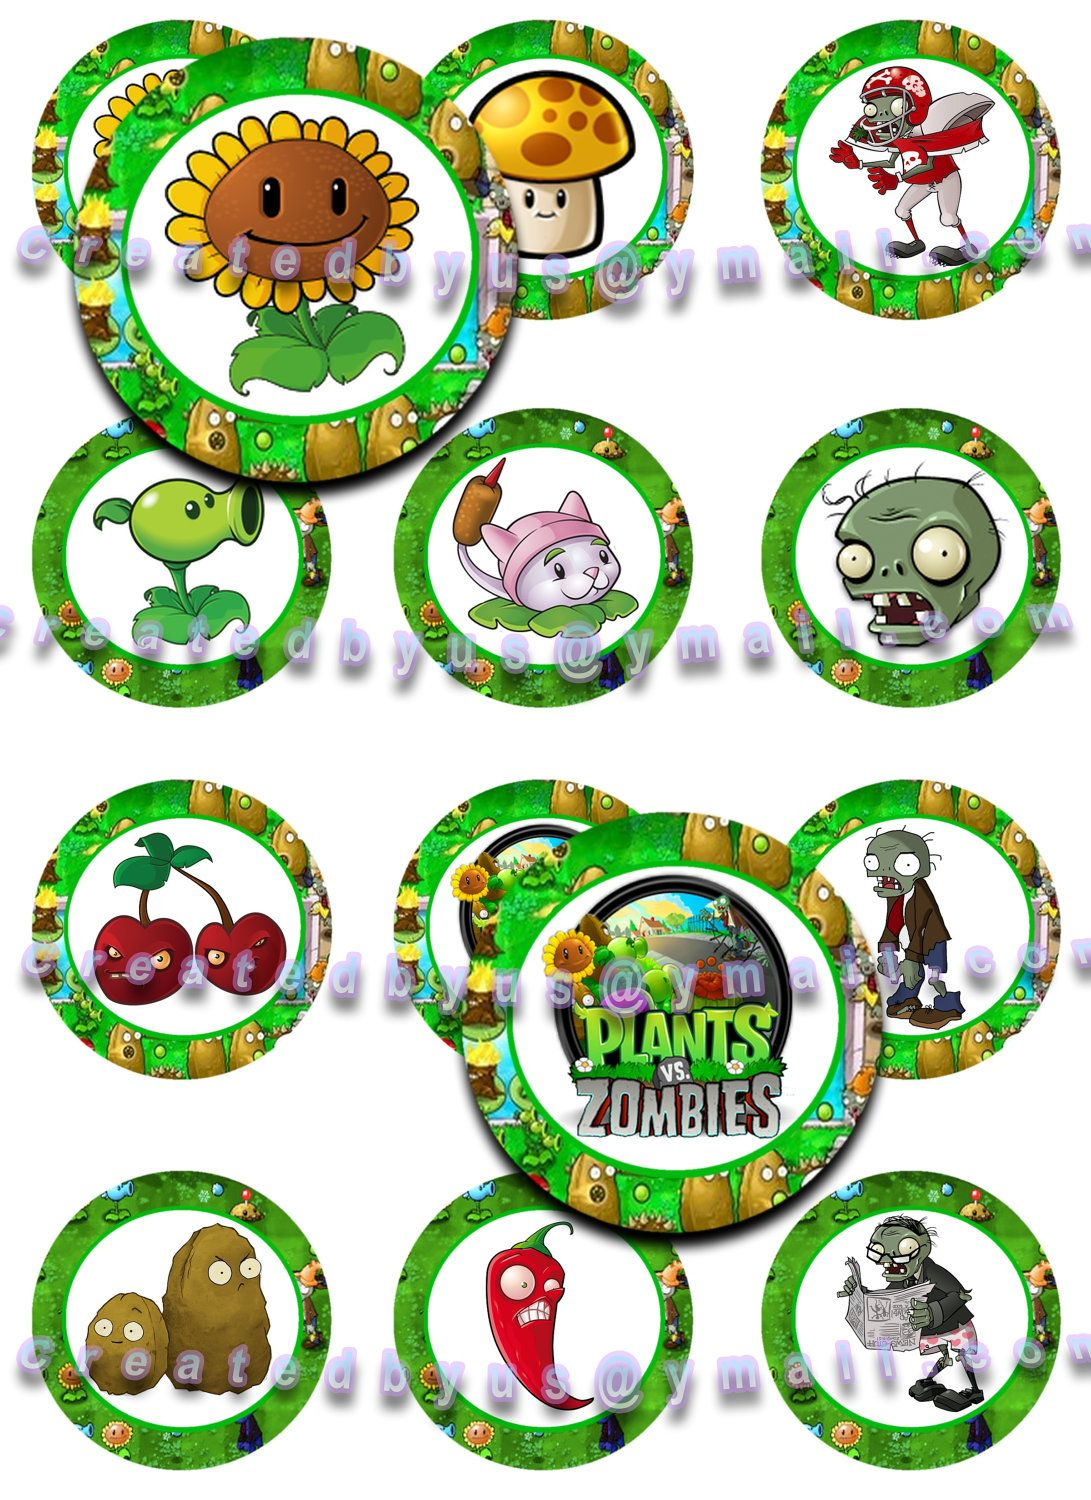 12 Precut EDIBLE PLANTS vs ZOMBIES Cupcake Toppers Cookie